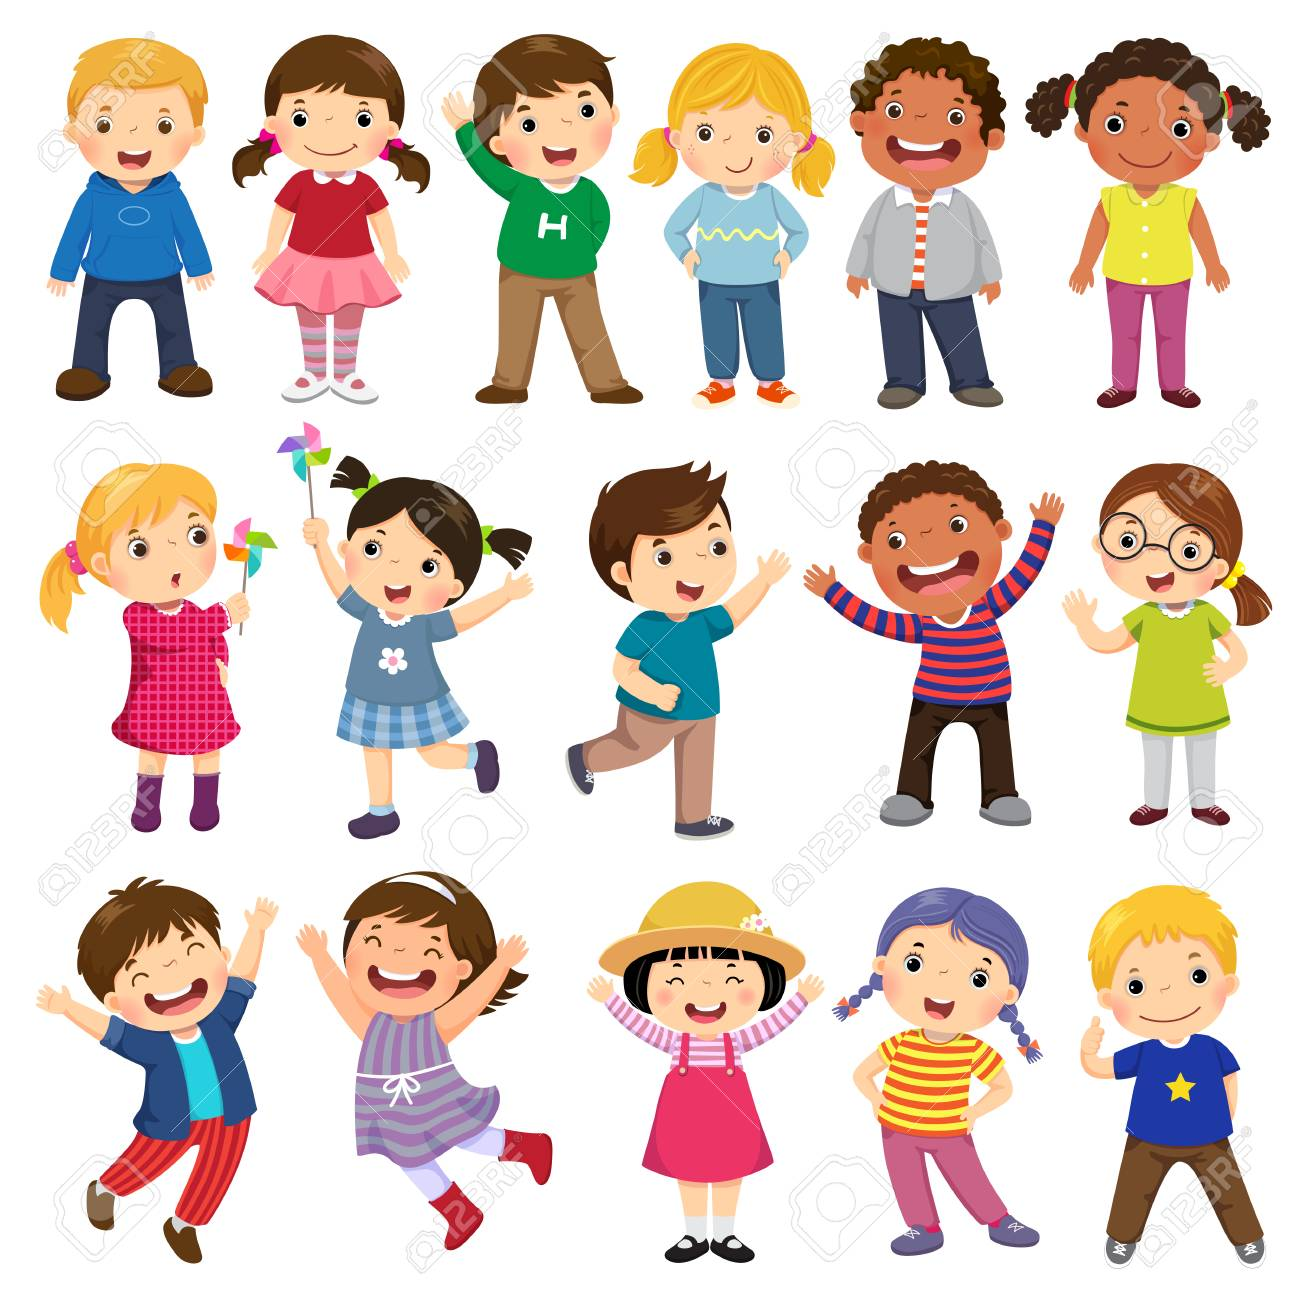 Happy kids cartoon collection. Multicultural children in different positions isolated on white background - 94427881